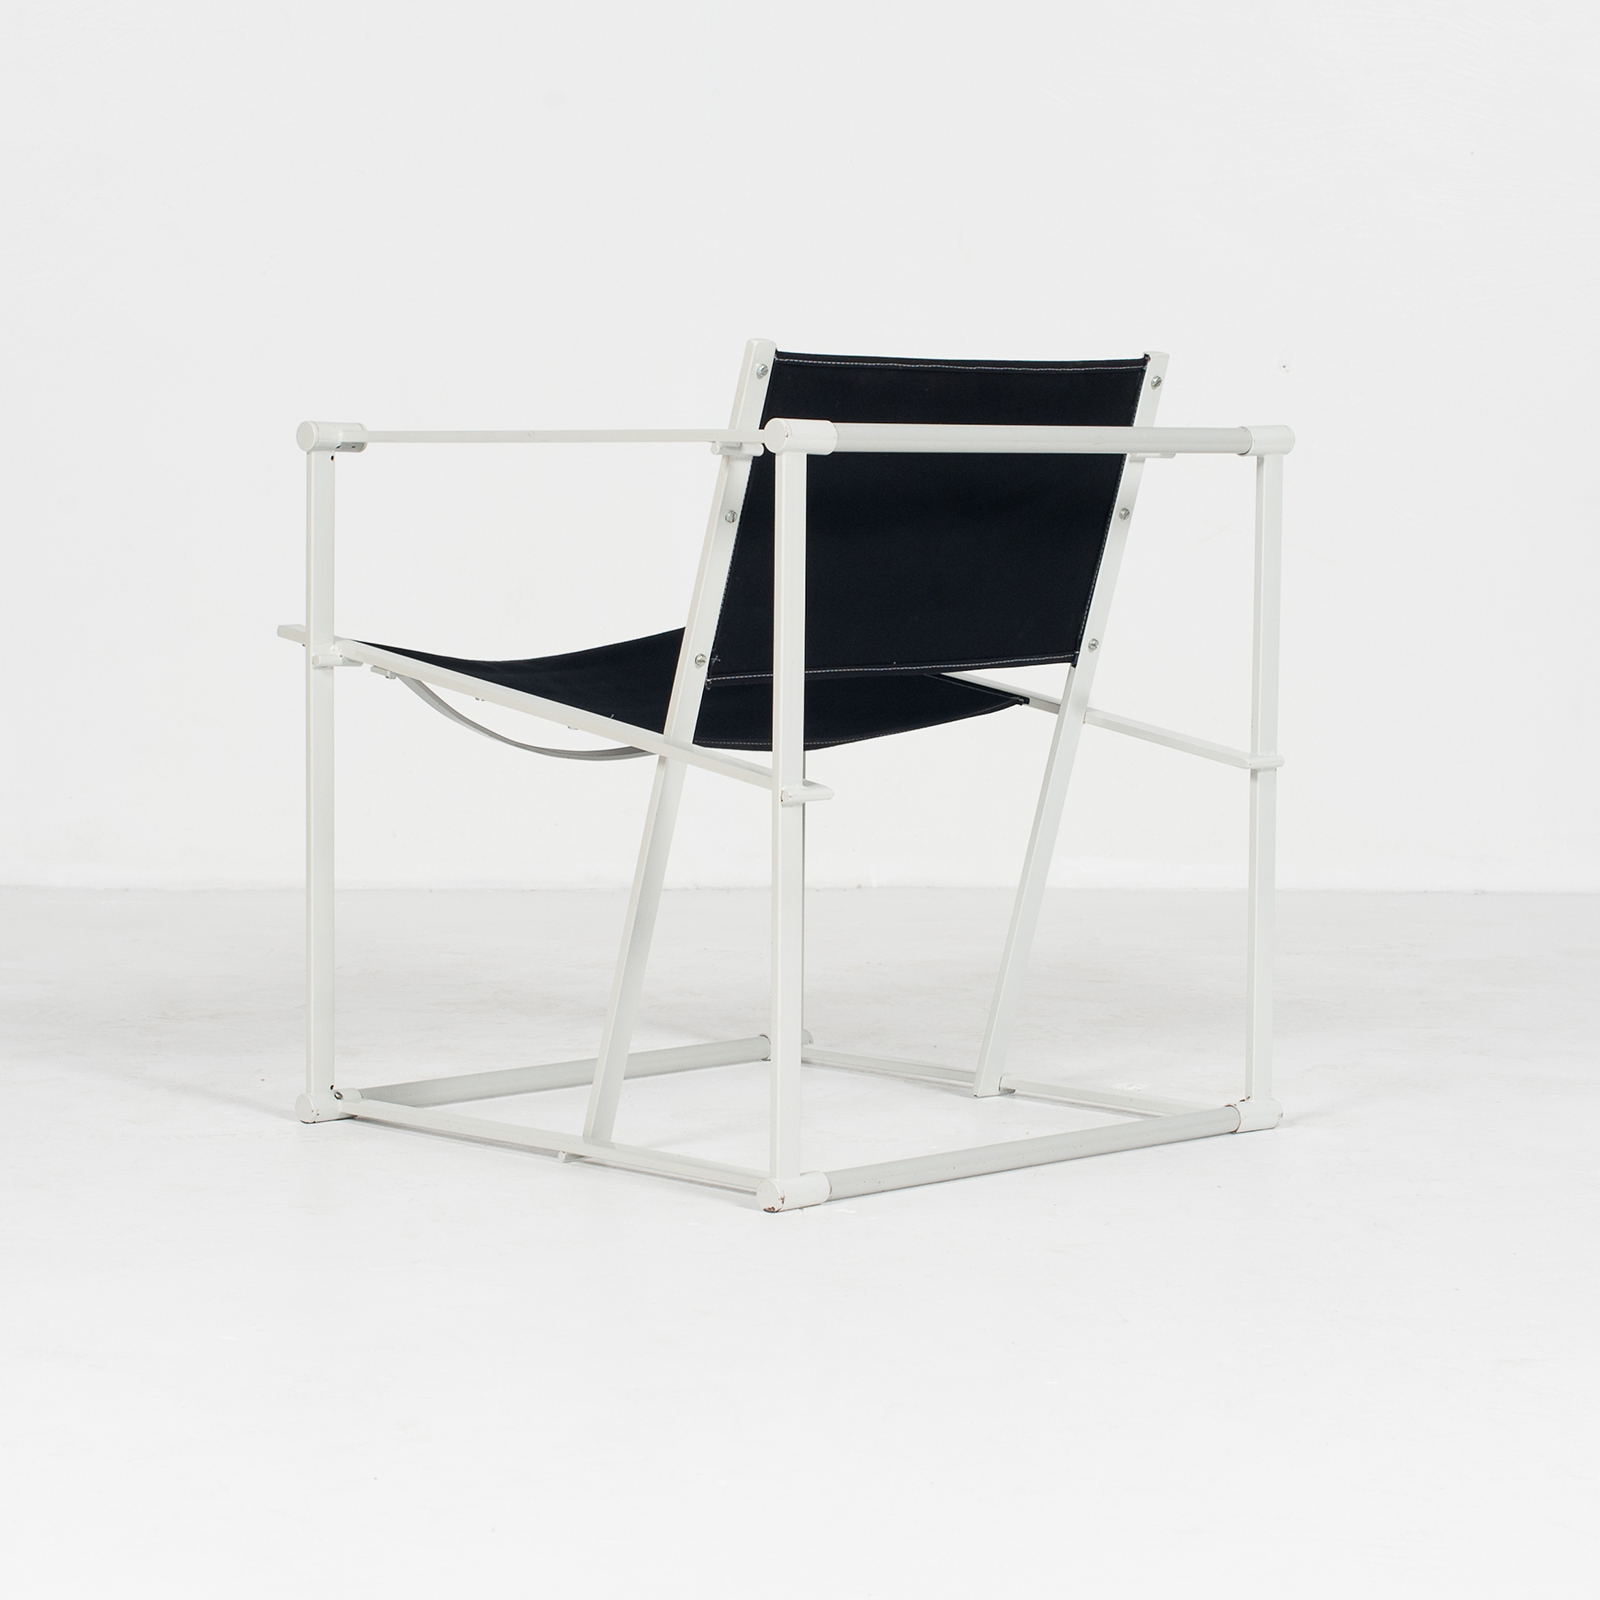 Model Fm60 Cubic Chair By Radboud Van Beekum For Pastoe In Black Canvas And Grey Frame, 1980s, The Netherlands37